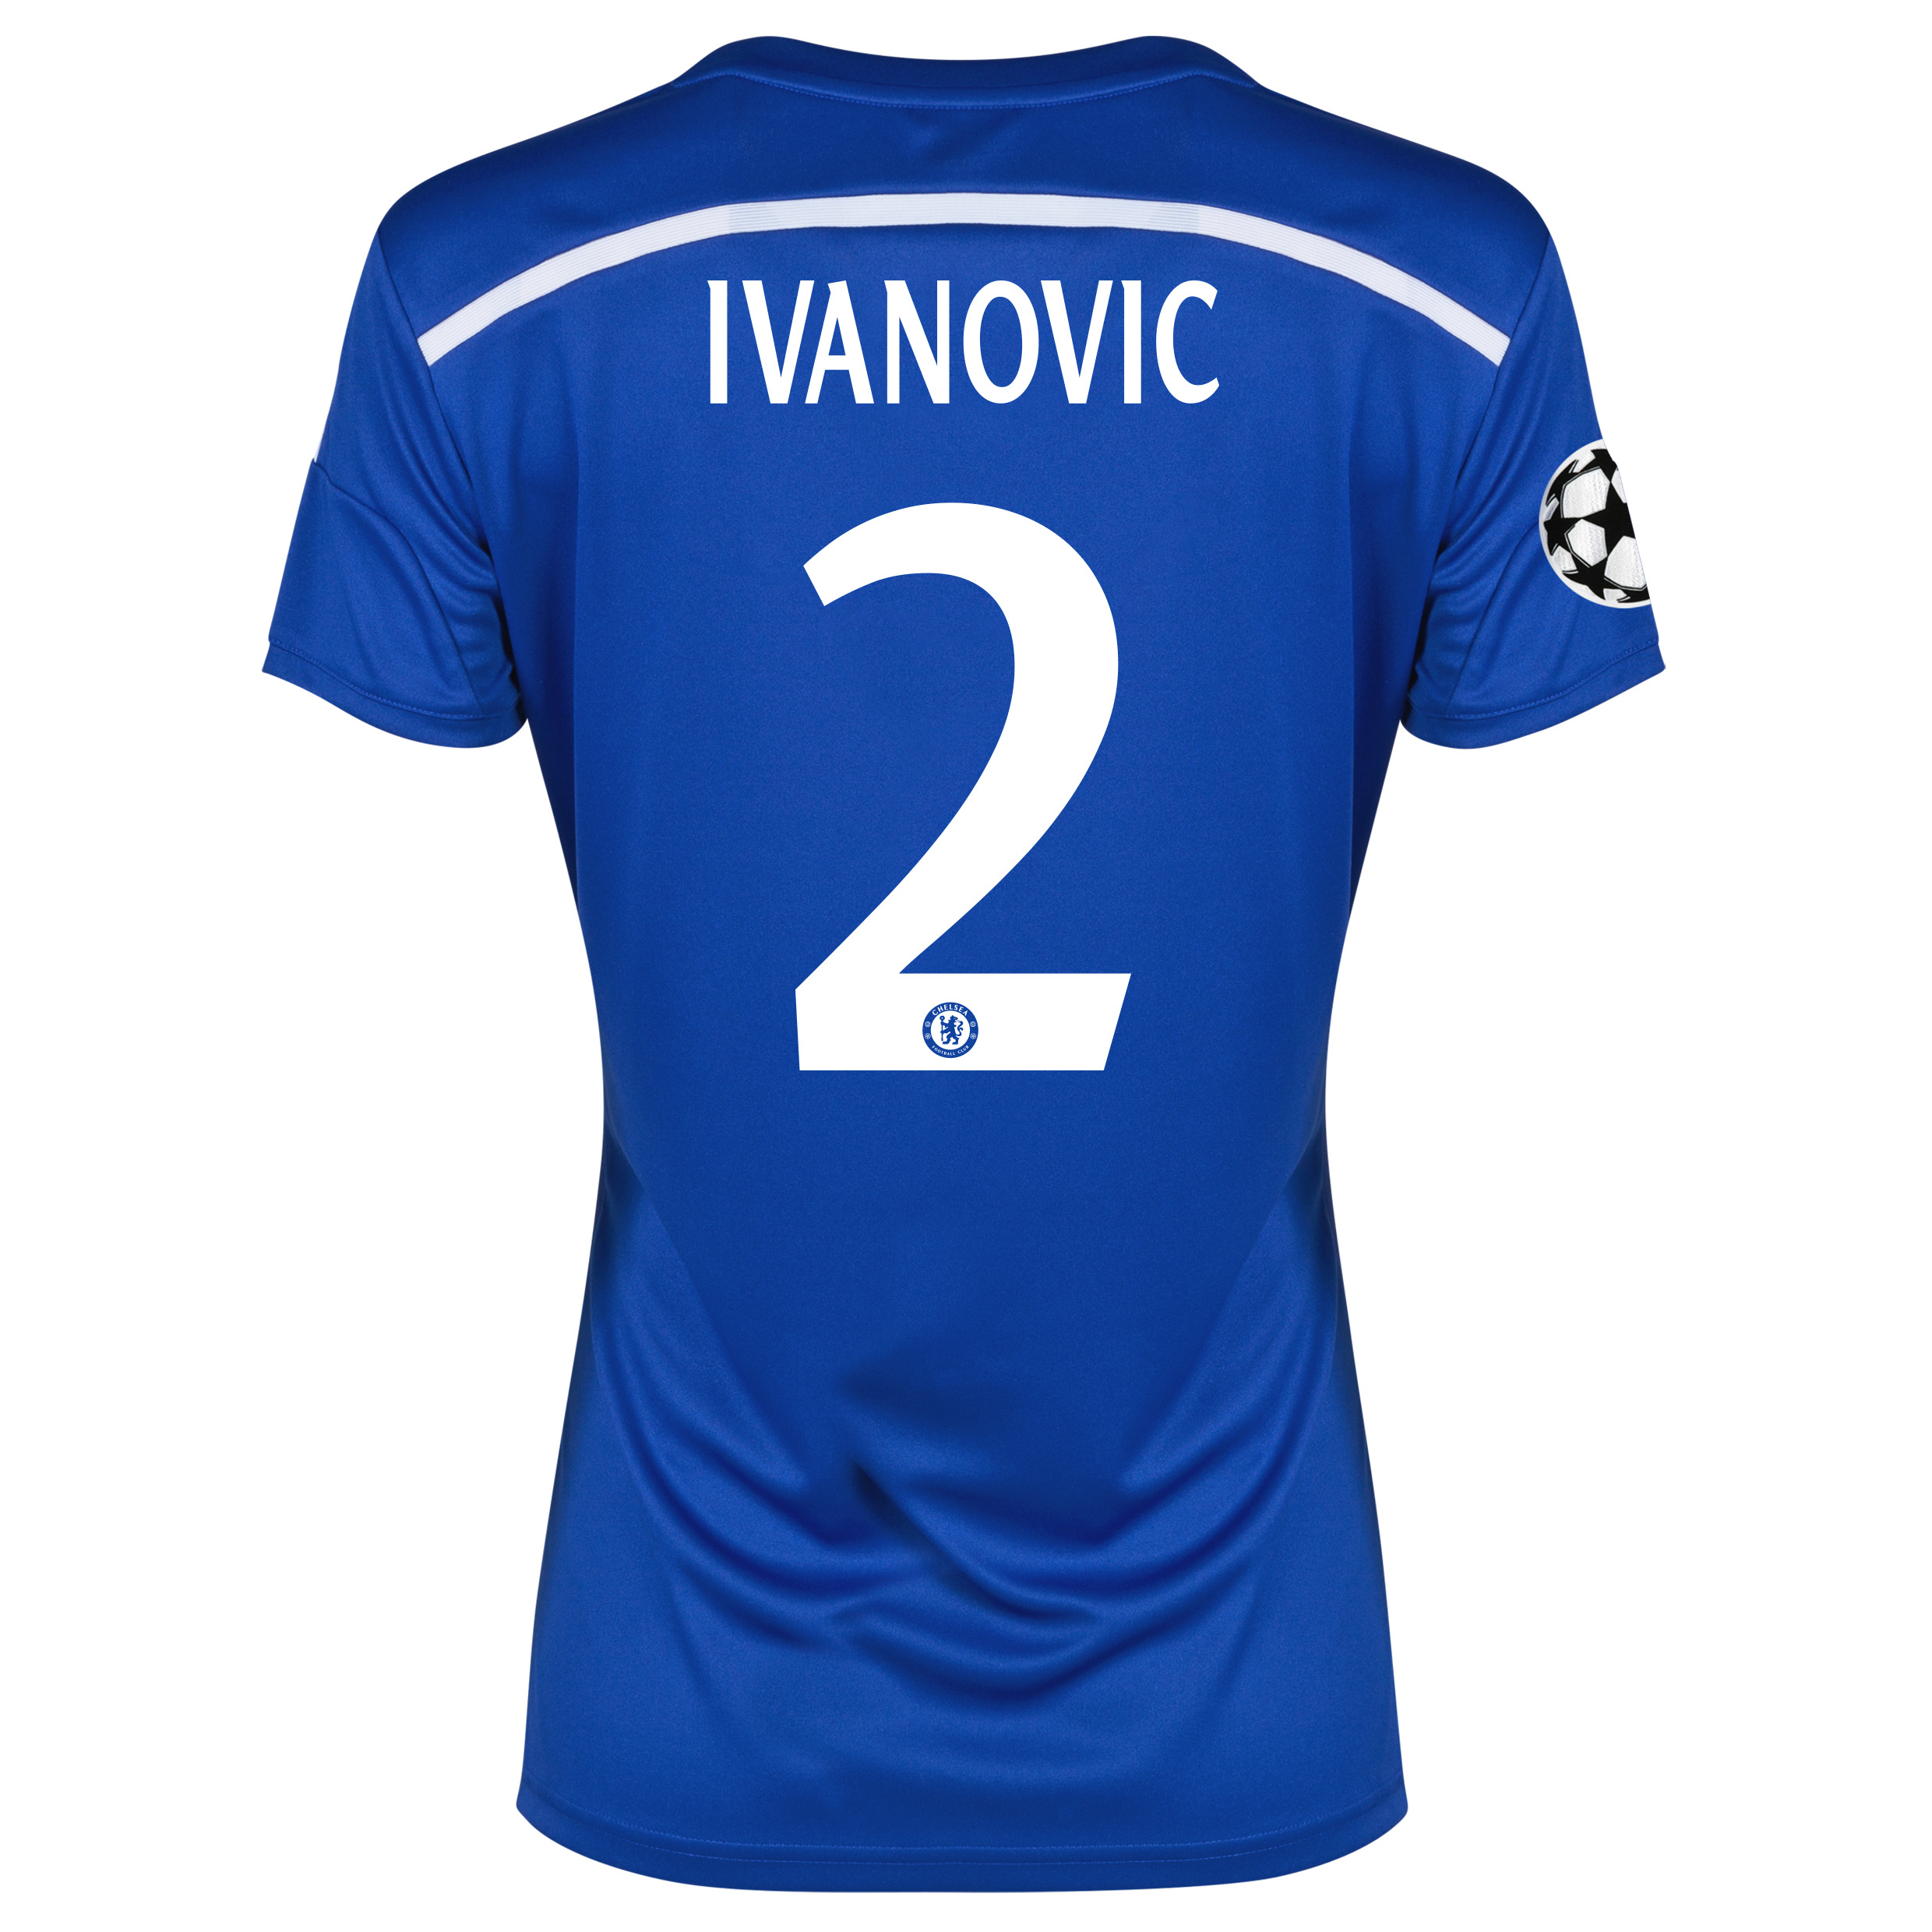 Chelsea UEFA Champions League Home Shirt 2014/15 - Womens Blue with Ivanovic 2 printing